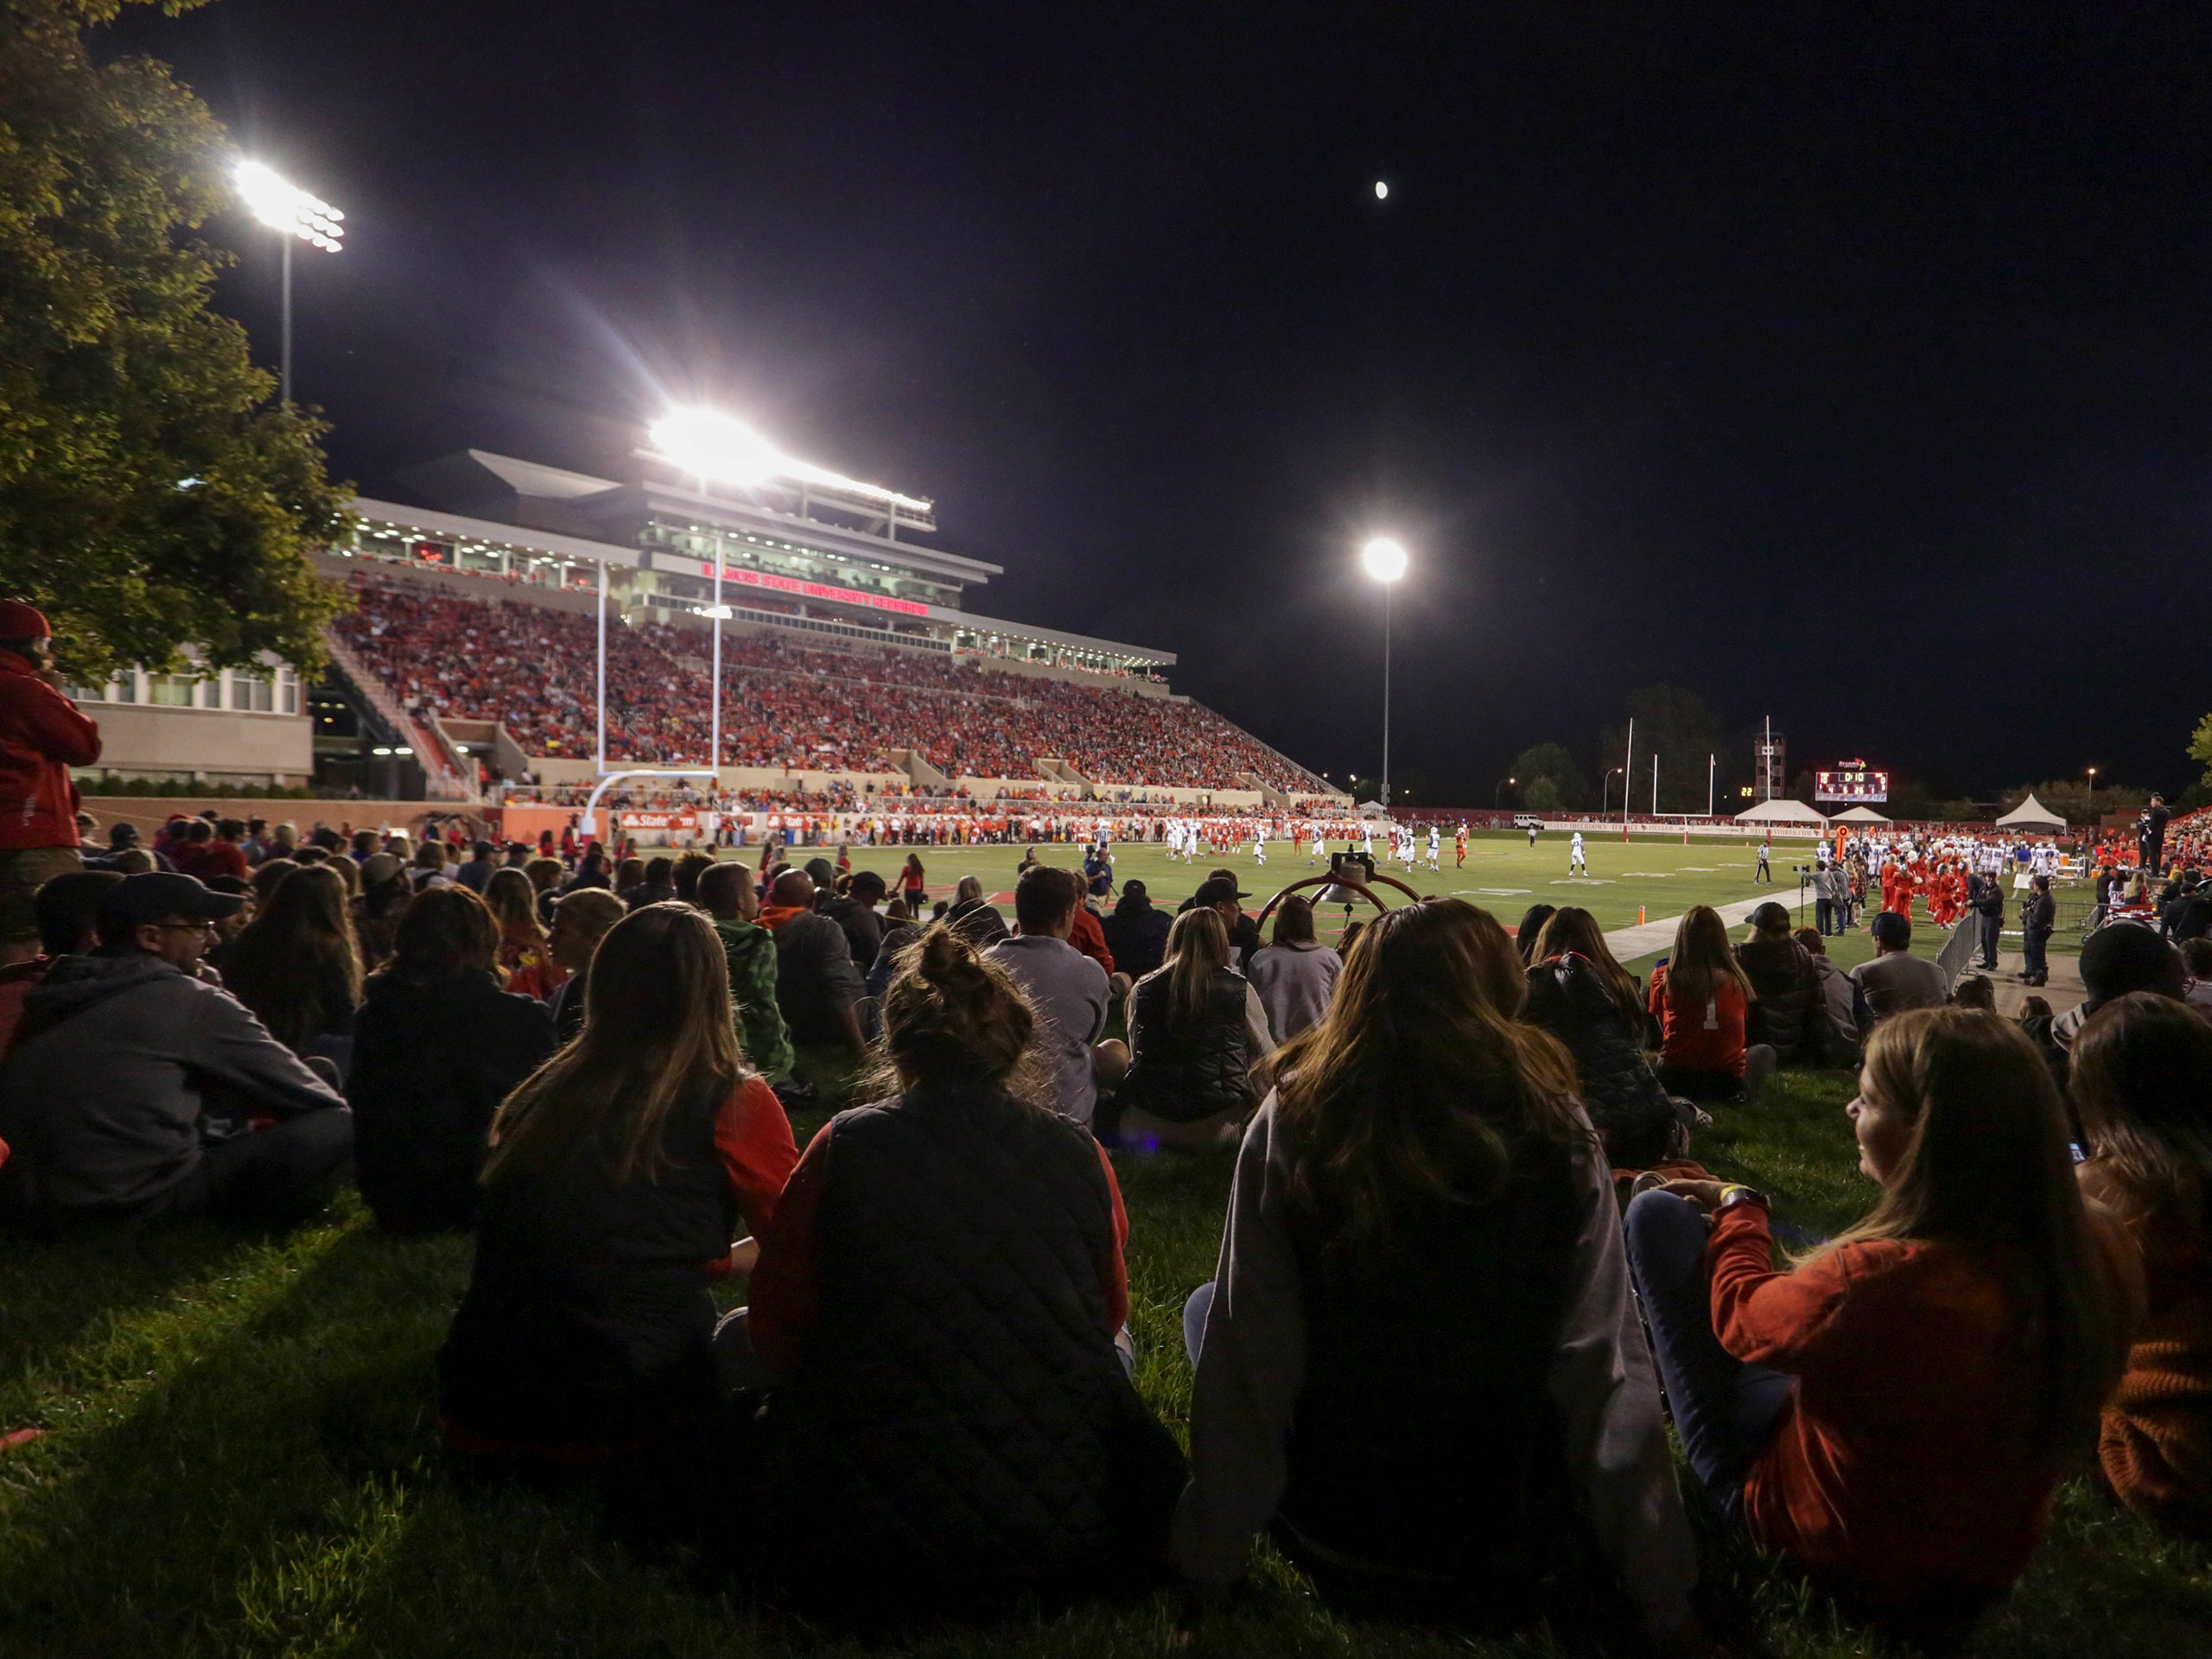 Students watching Illinois State football from the lawn seats.